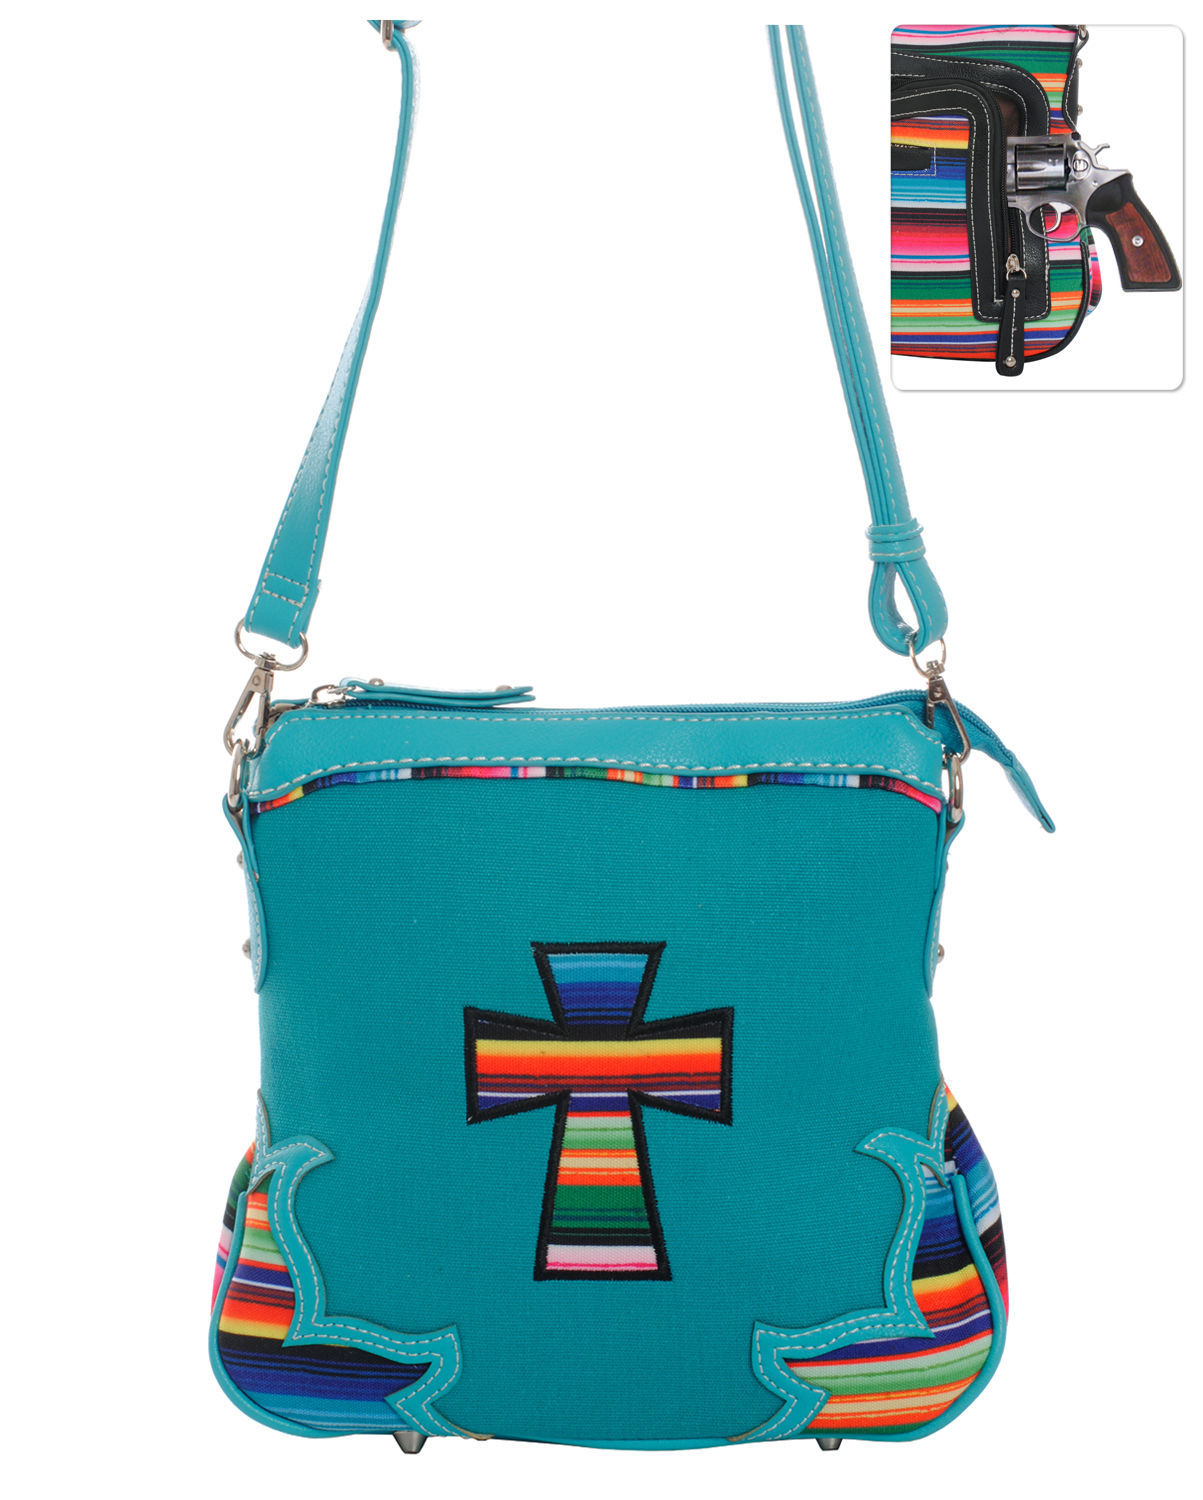 Serape Striped Messenger Bag Cross Body Purse Turquoise Concealed Gun Pocket